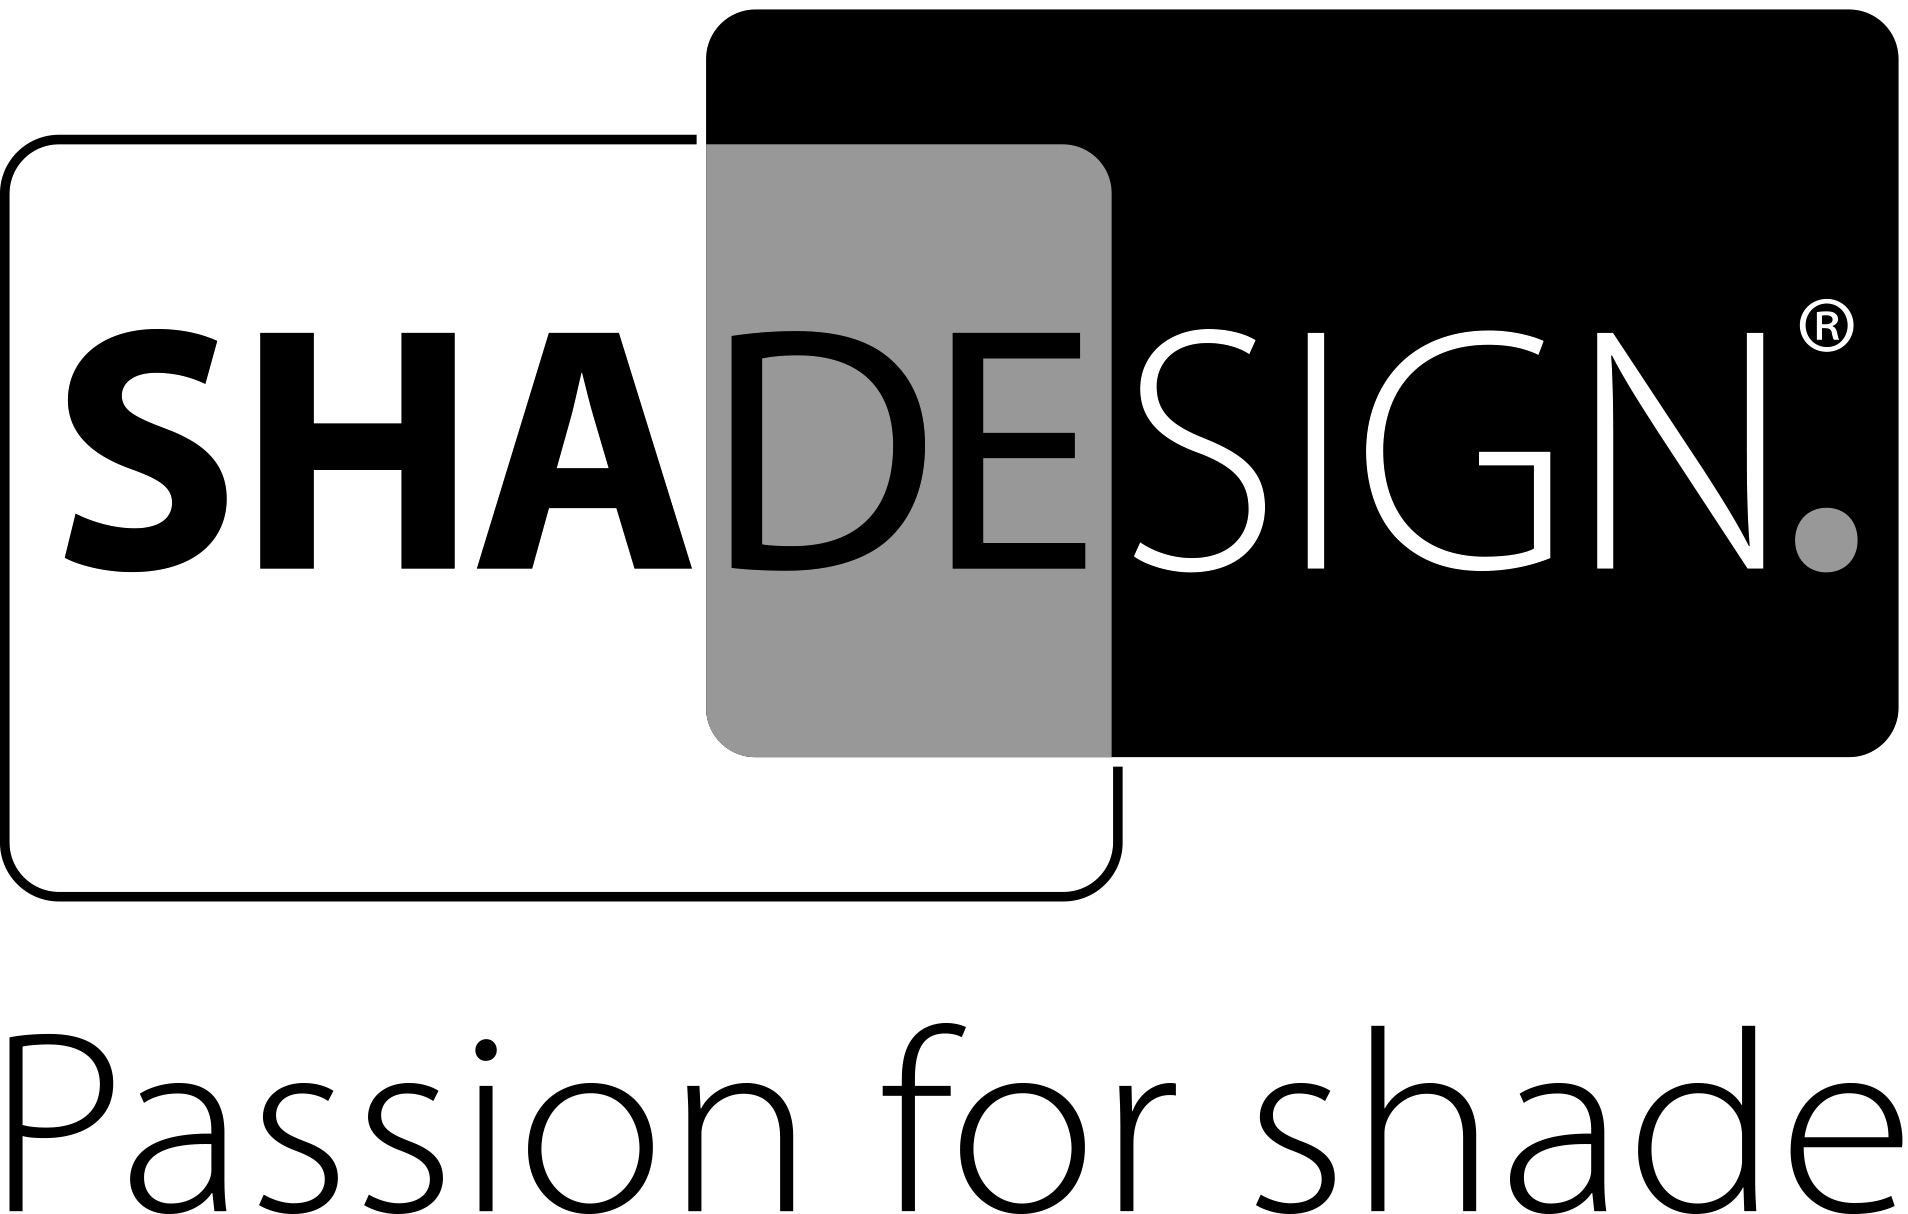 shadesign_logo_2018_sw.png